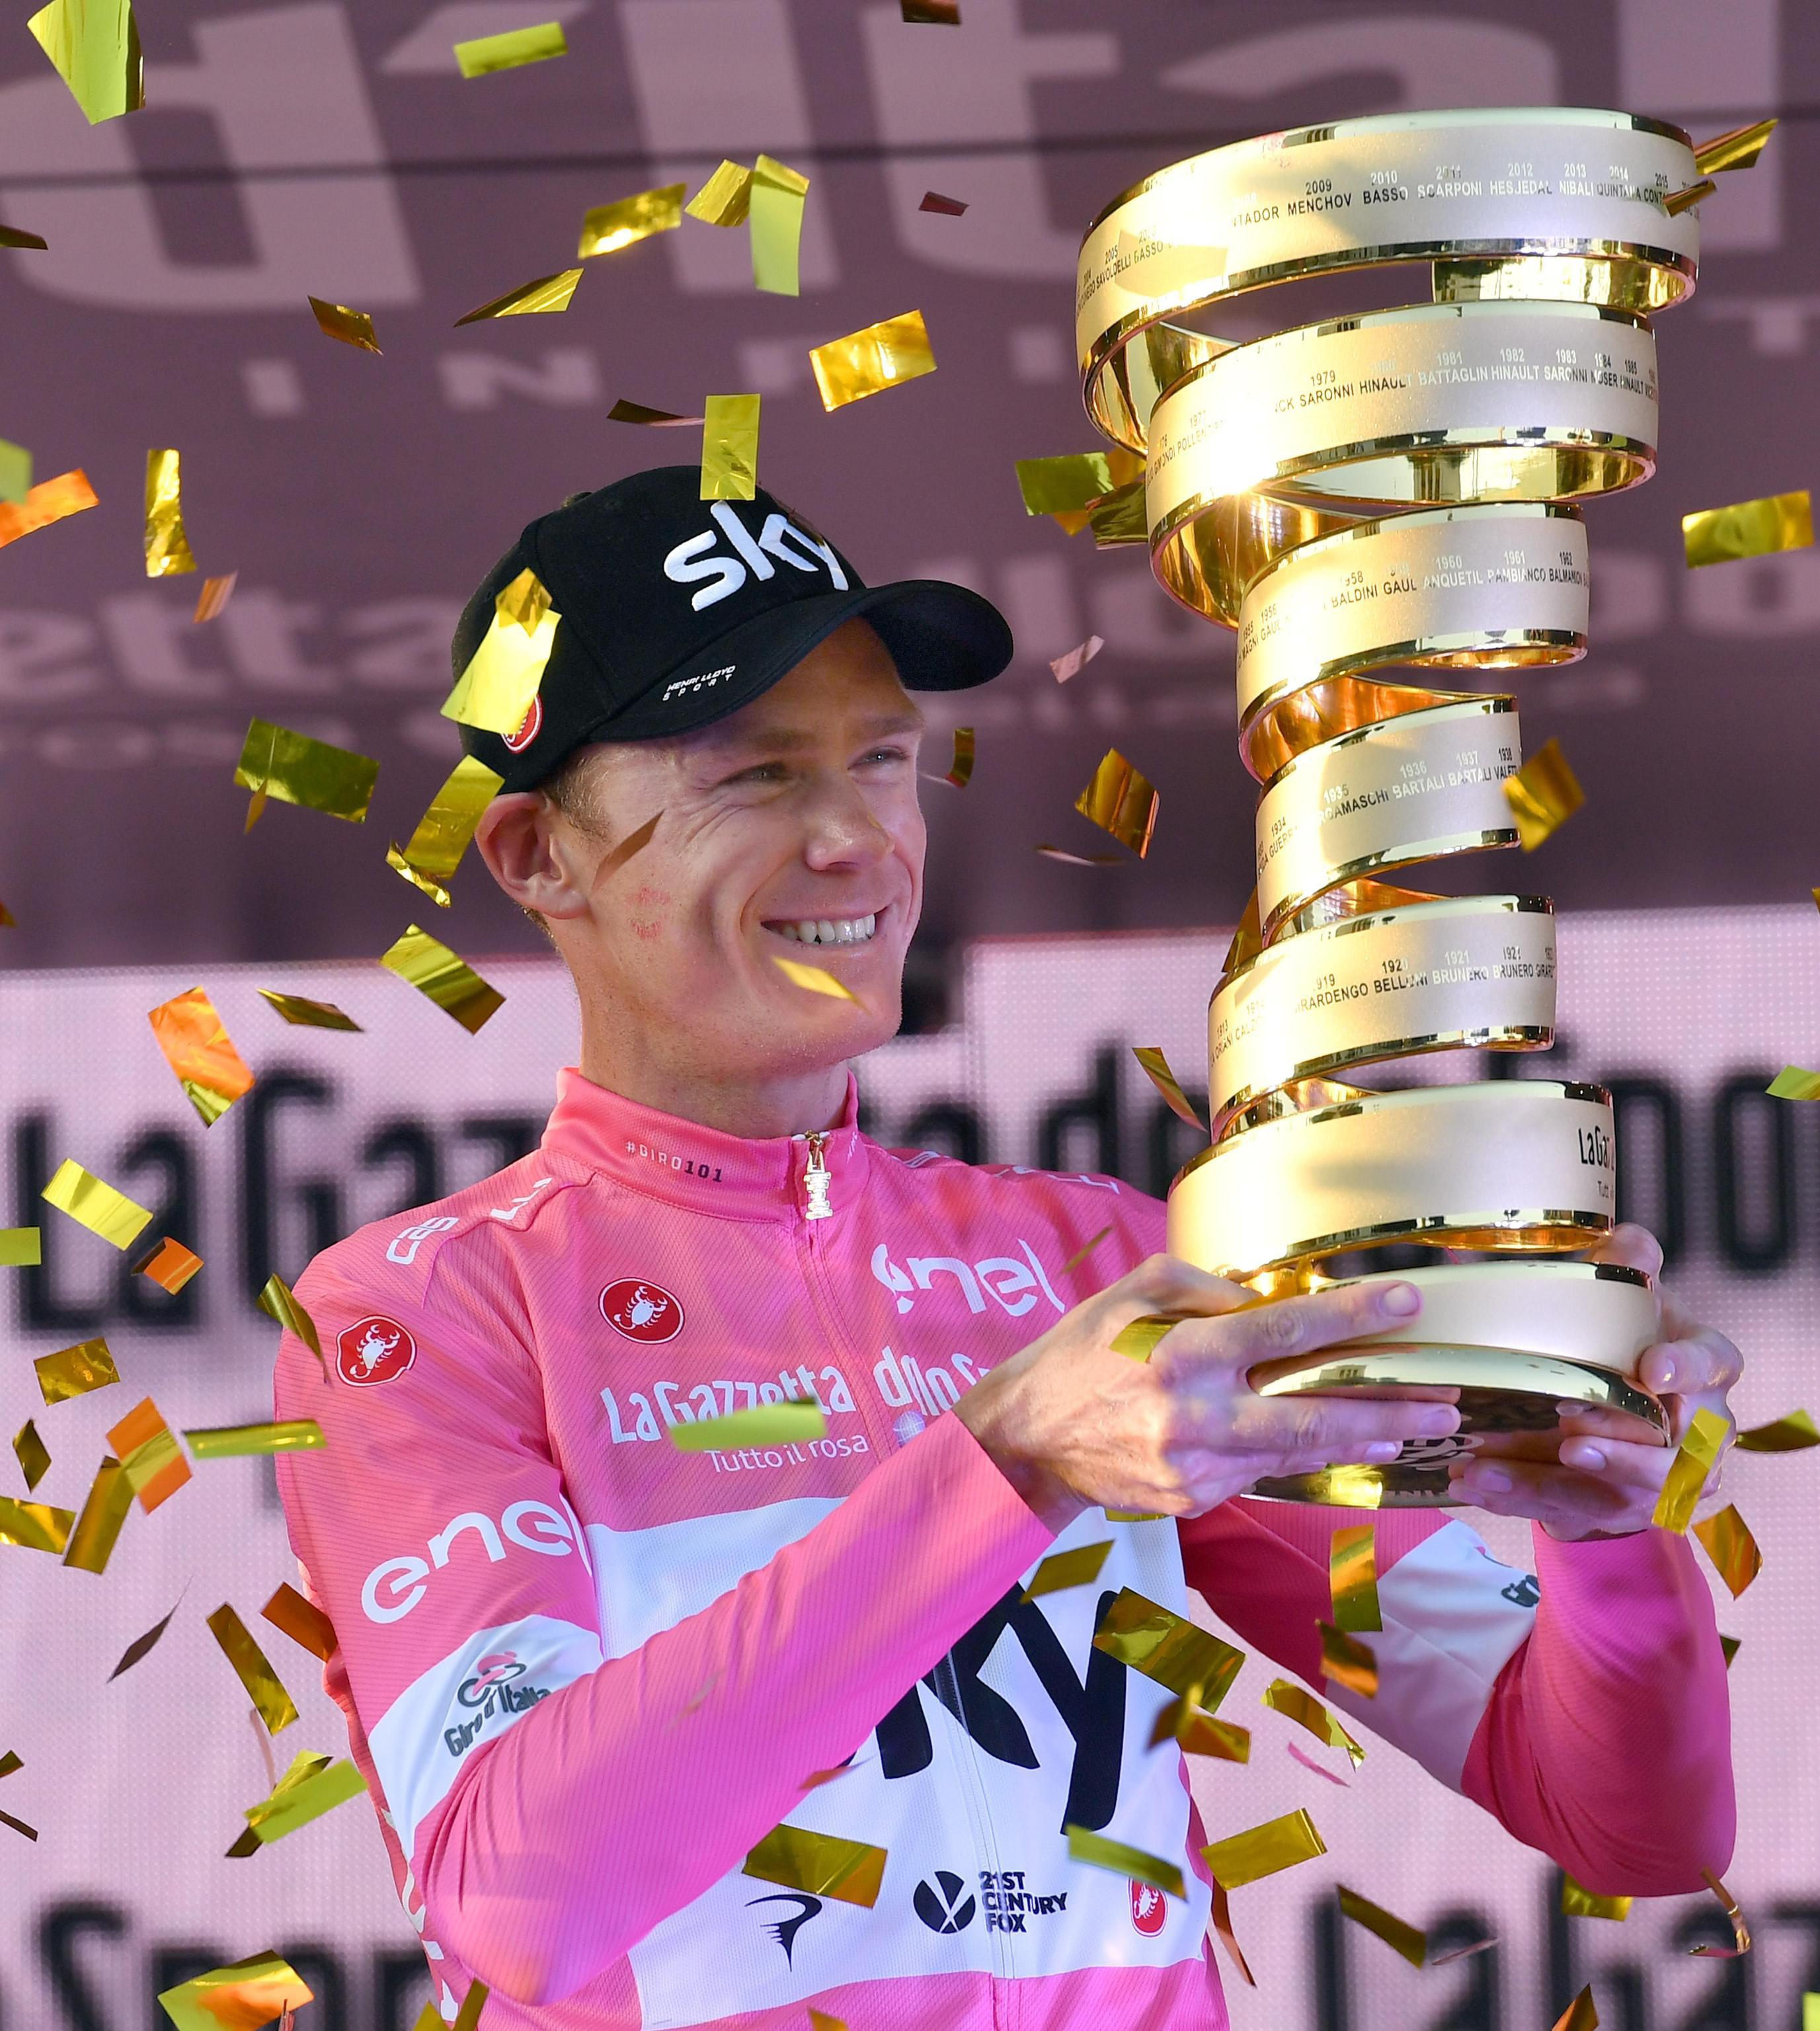 Froome celebrates as he is presented with the Giro trophy - his third Grand Tours in a row